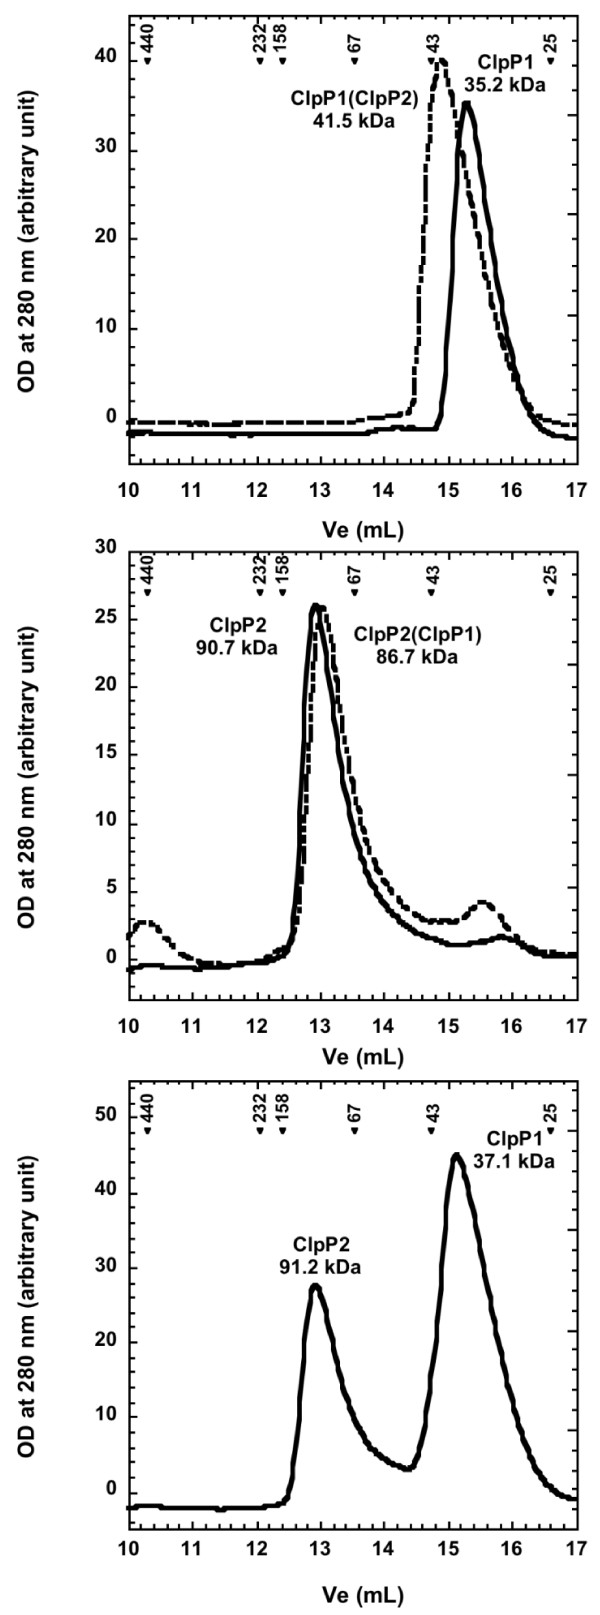 Oligomeric assembly of recombinant ClpP1 and ClpP2 . 75 μg of recombinant ClpP1 (upper panel, solid line) or ClpP2 (middle panel, solid line) produced independently or in the presence of ClpP2 (upper panel, dashed line) and ClpP1 (middle panel, dashed line) respectively were loaded on a superdex 200 10/30 column as described in the Methods section. In the lower panel, 75 μg of ClpP1 were mixed with 75 μg of ClpP2 and incubated 2 h at room temperature before being loaded on the superdex 200 column. Arrowheads indicate the elution of molecular mass standards with their molecular mass in kDa and the deduced apparent molecular masses are shown under the corresponding protein names.